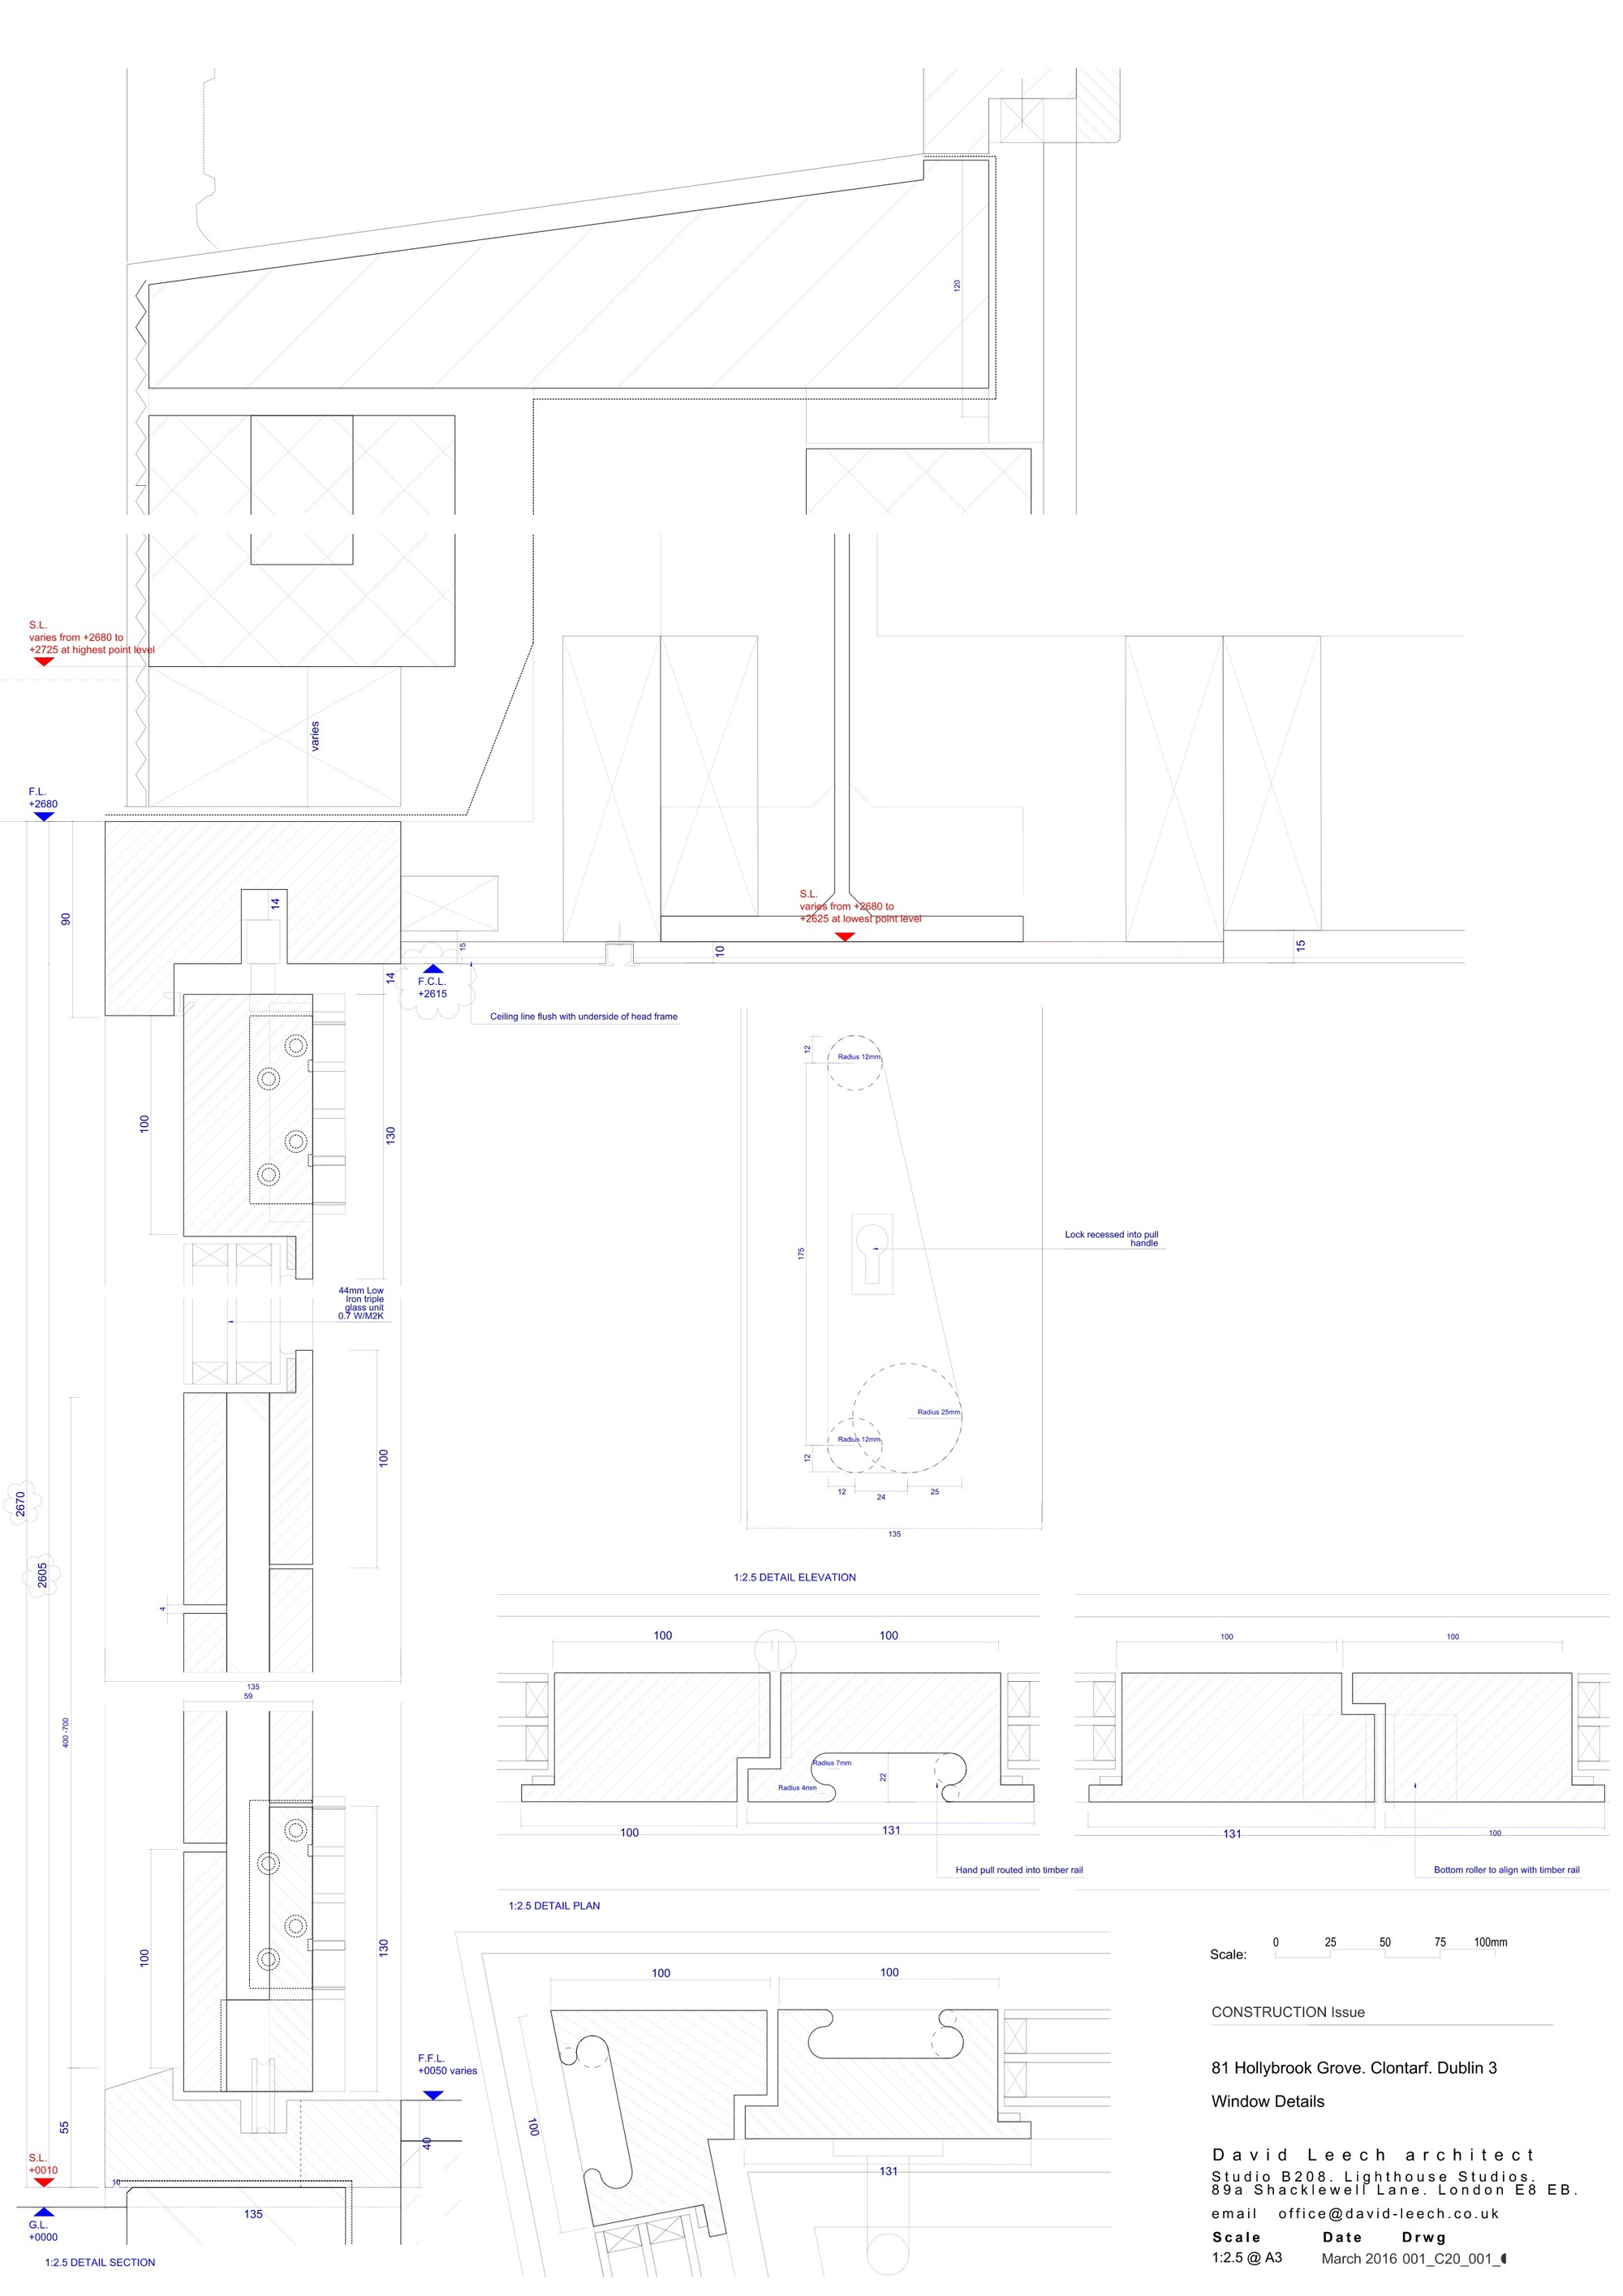 39_A_house_in_a_garden_81_Hollybrook_Grove_Drawing_07_Window_detail_plan_section.jpg